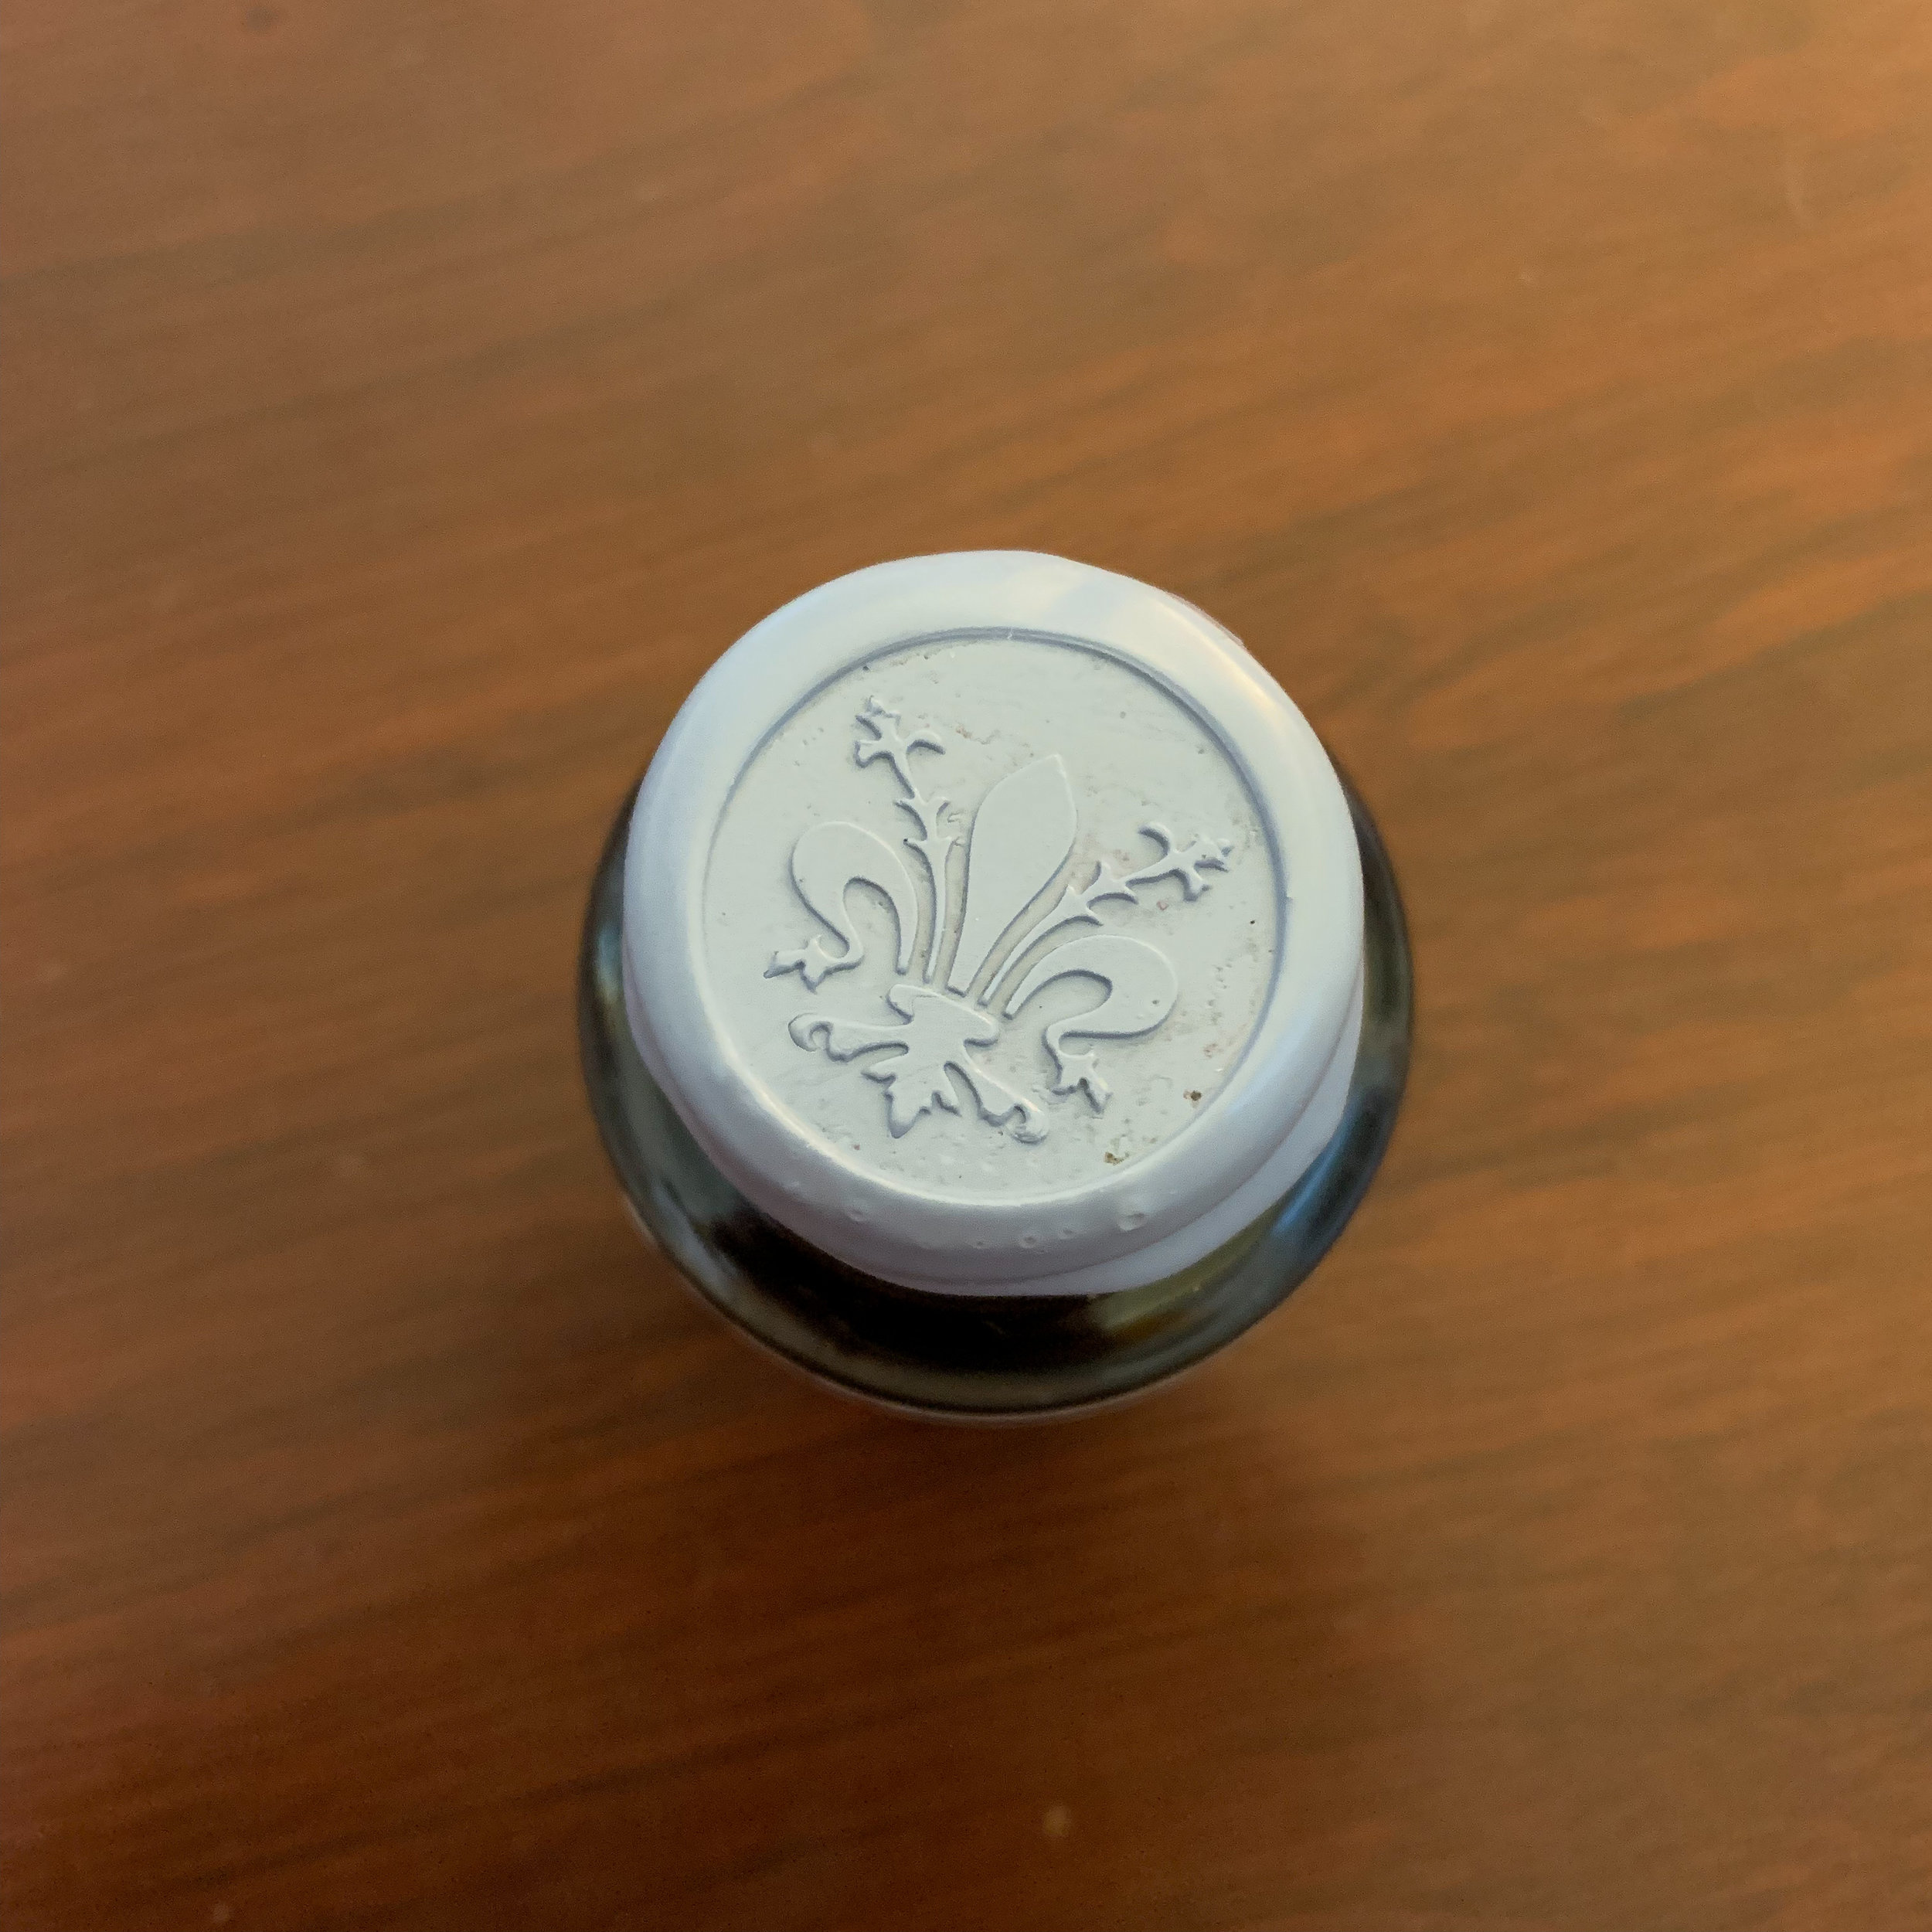 Papier Plume also specializes in wax seals, an example of which you will find on the caps of their special edition inks.